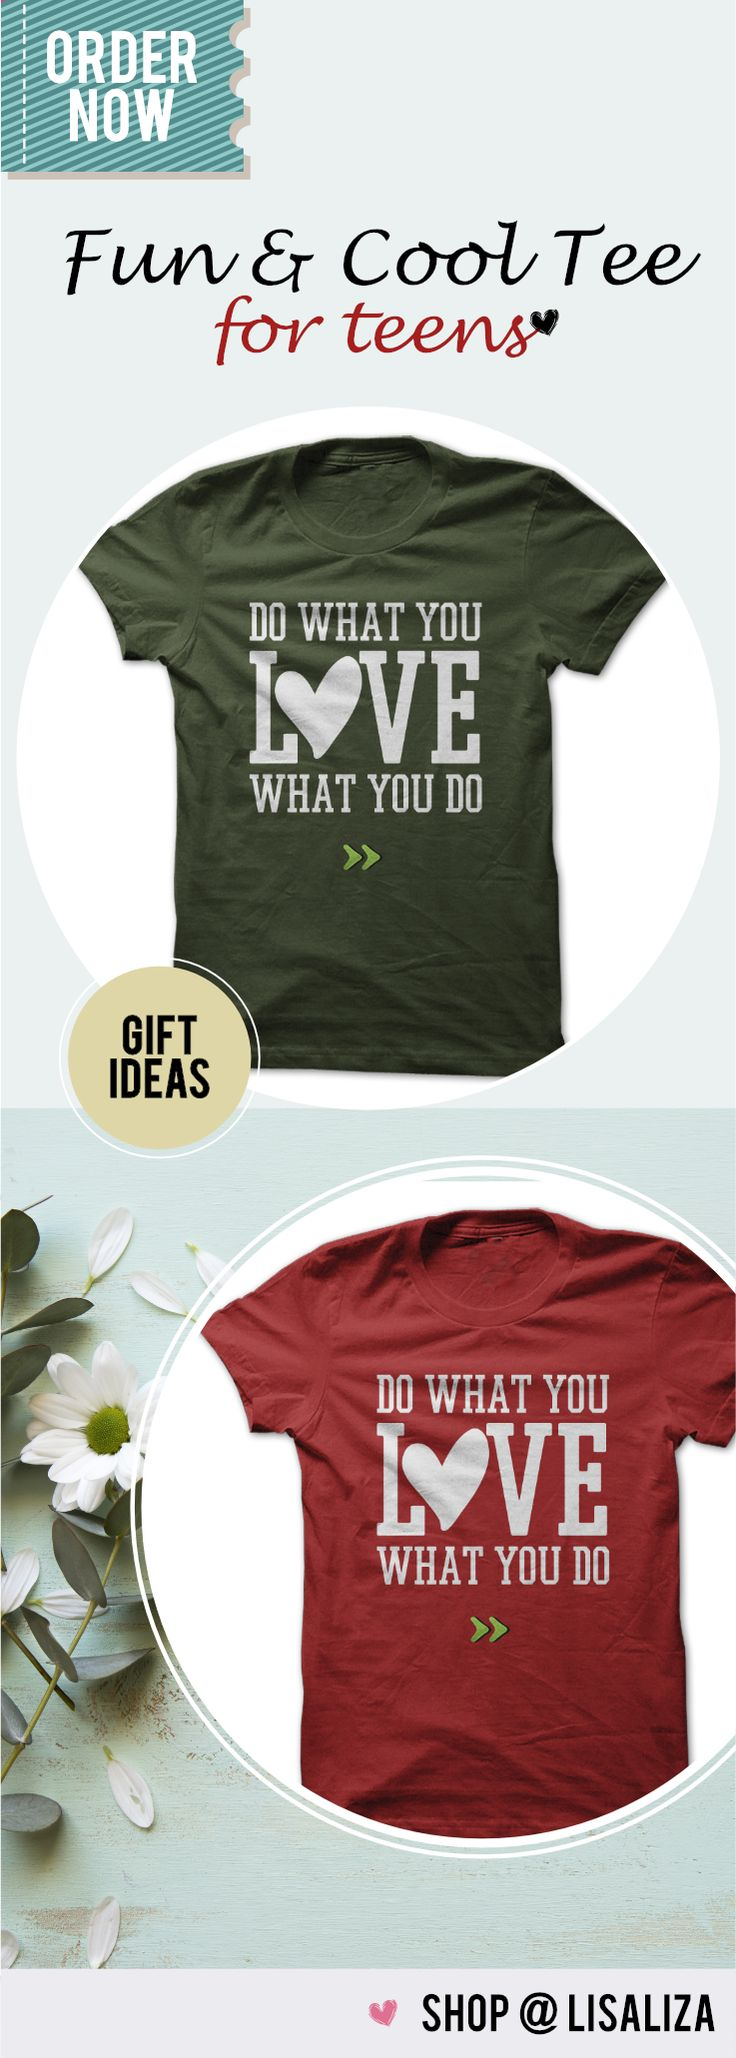 Do what you love what you do.  Motivational /Inspirational Tees Quotes and Sayings  for   everyone.  Spreading Good Vibes /Positive Vibes . No bad days put on   this cool designs and feel the positive energy .  Casual Outfits for   everyone. Tumblr Teen Fashion Unisex Tee Shirt for Men & Women      #SayingTee #TeensBoys #TeensChic #Gifts #BestFriends #MotivationalTee   #LisaLiza #SunfrogTeens #Redbubble #tumblr